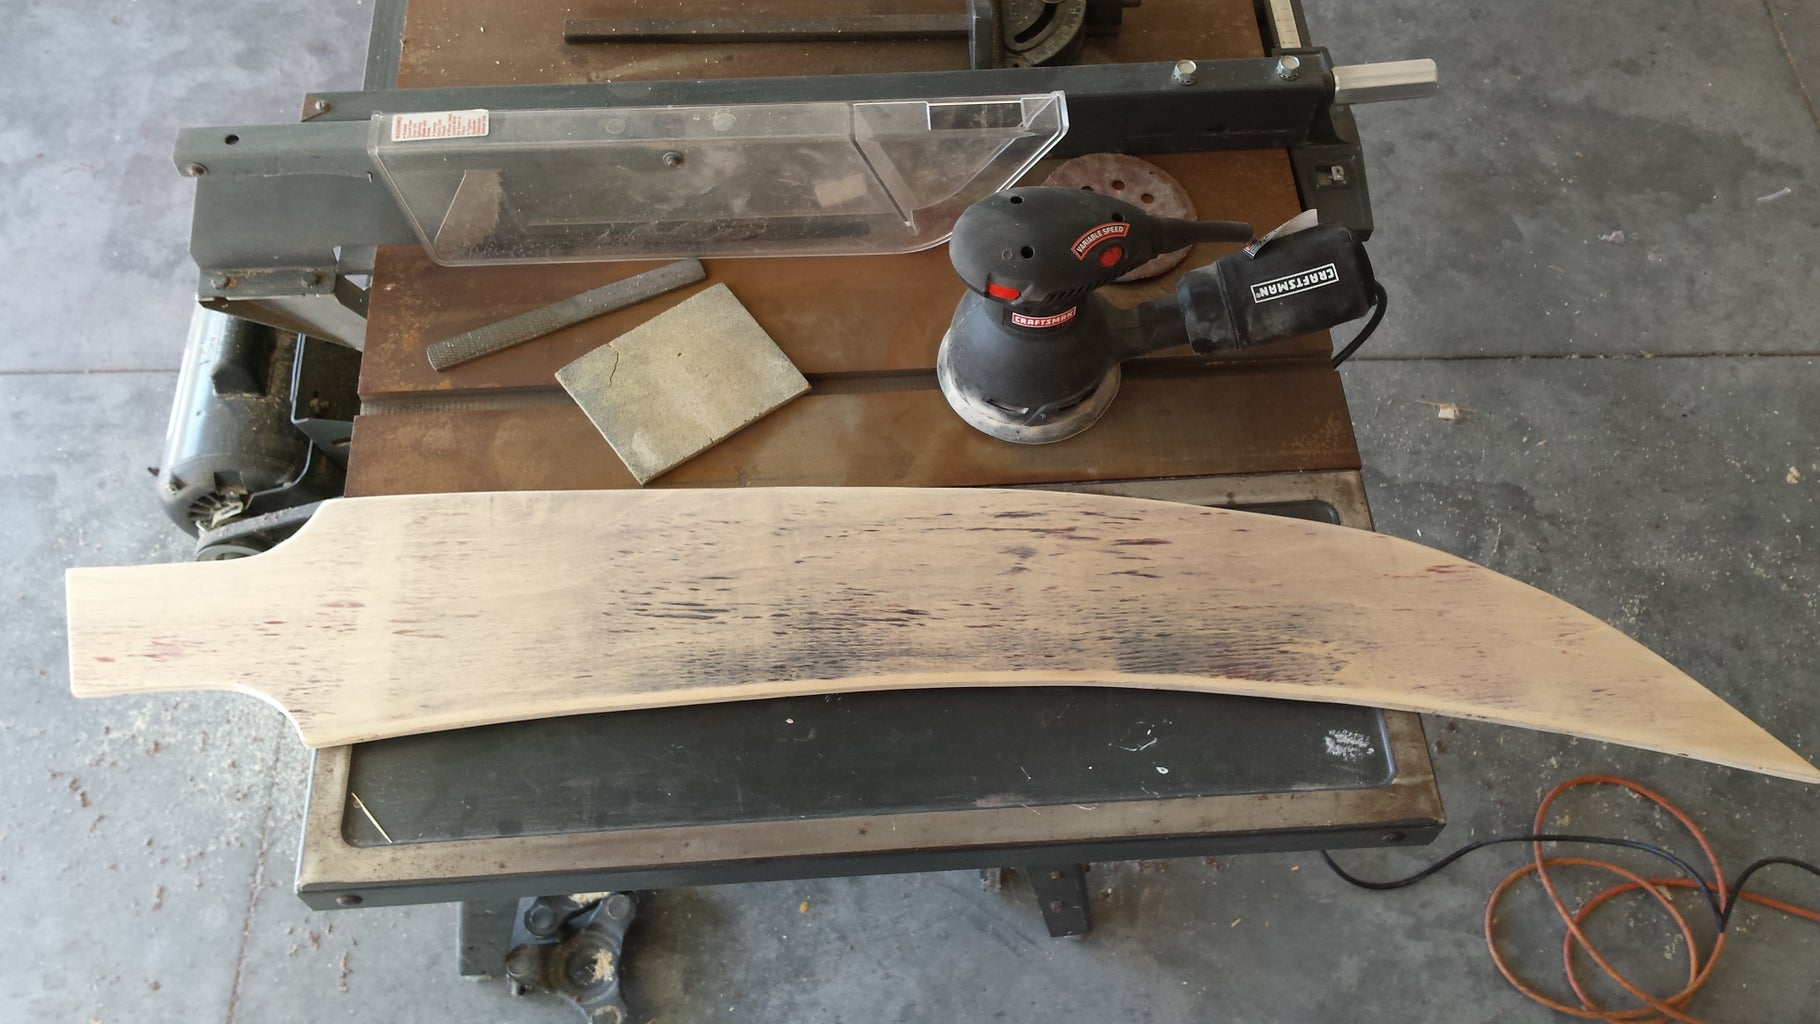 Preparing and Shaping the Blade